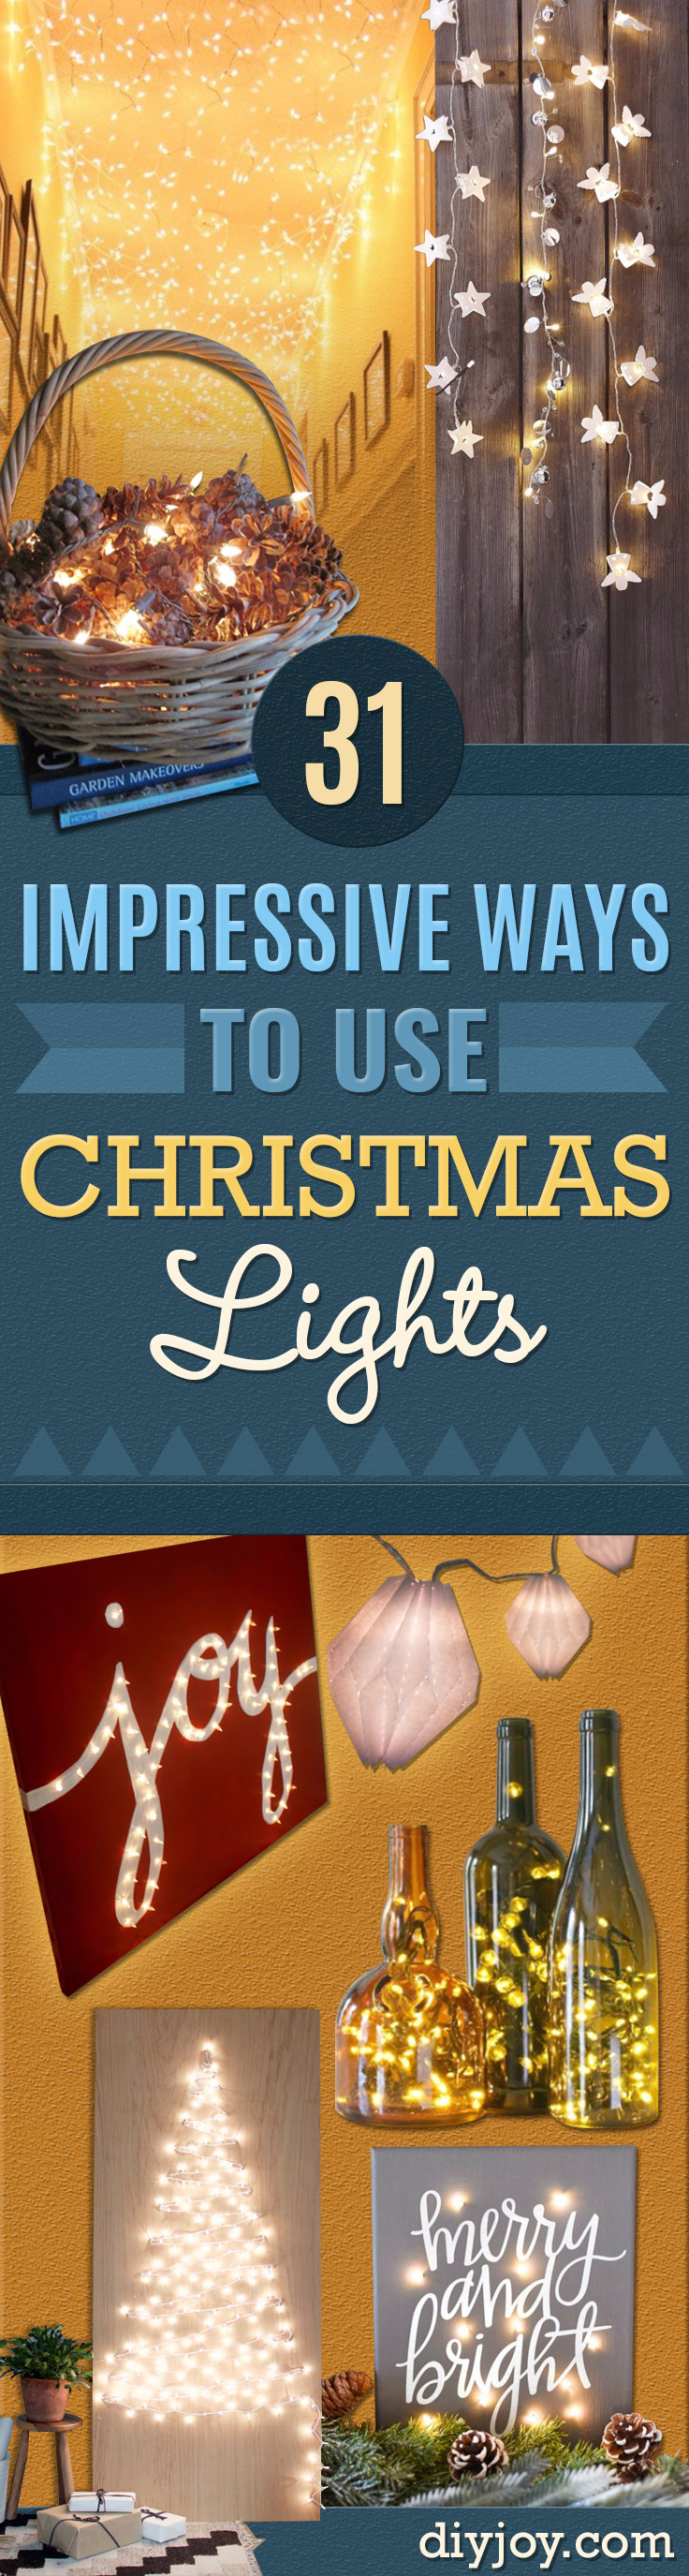 DIY String Light Ideas - Cool Ways To Use Christmas Lights - Best Easy DIY Ideas for String Lights for Room Decoration, Home Decor and Creative DIY Bedroom Lighting - Creative Christmas Light Crafts #christmas #diy